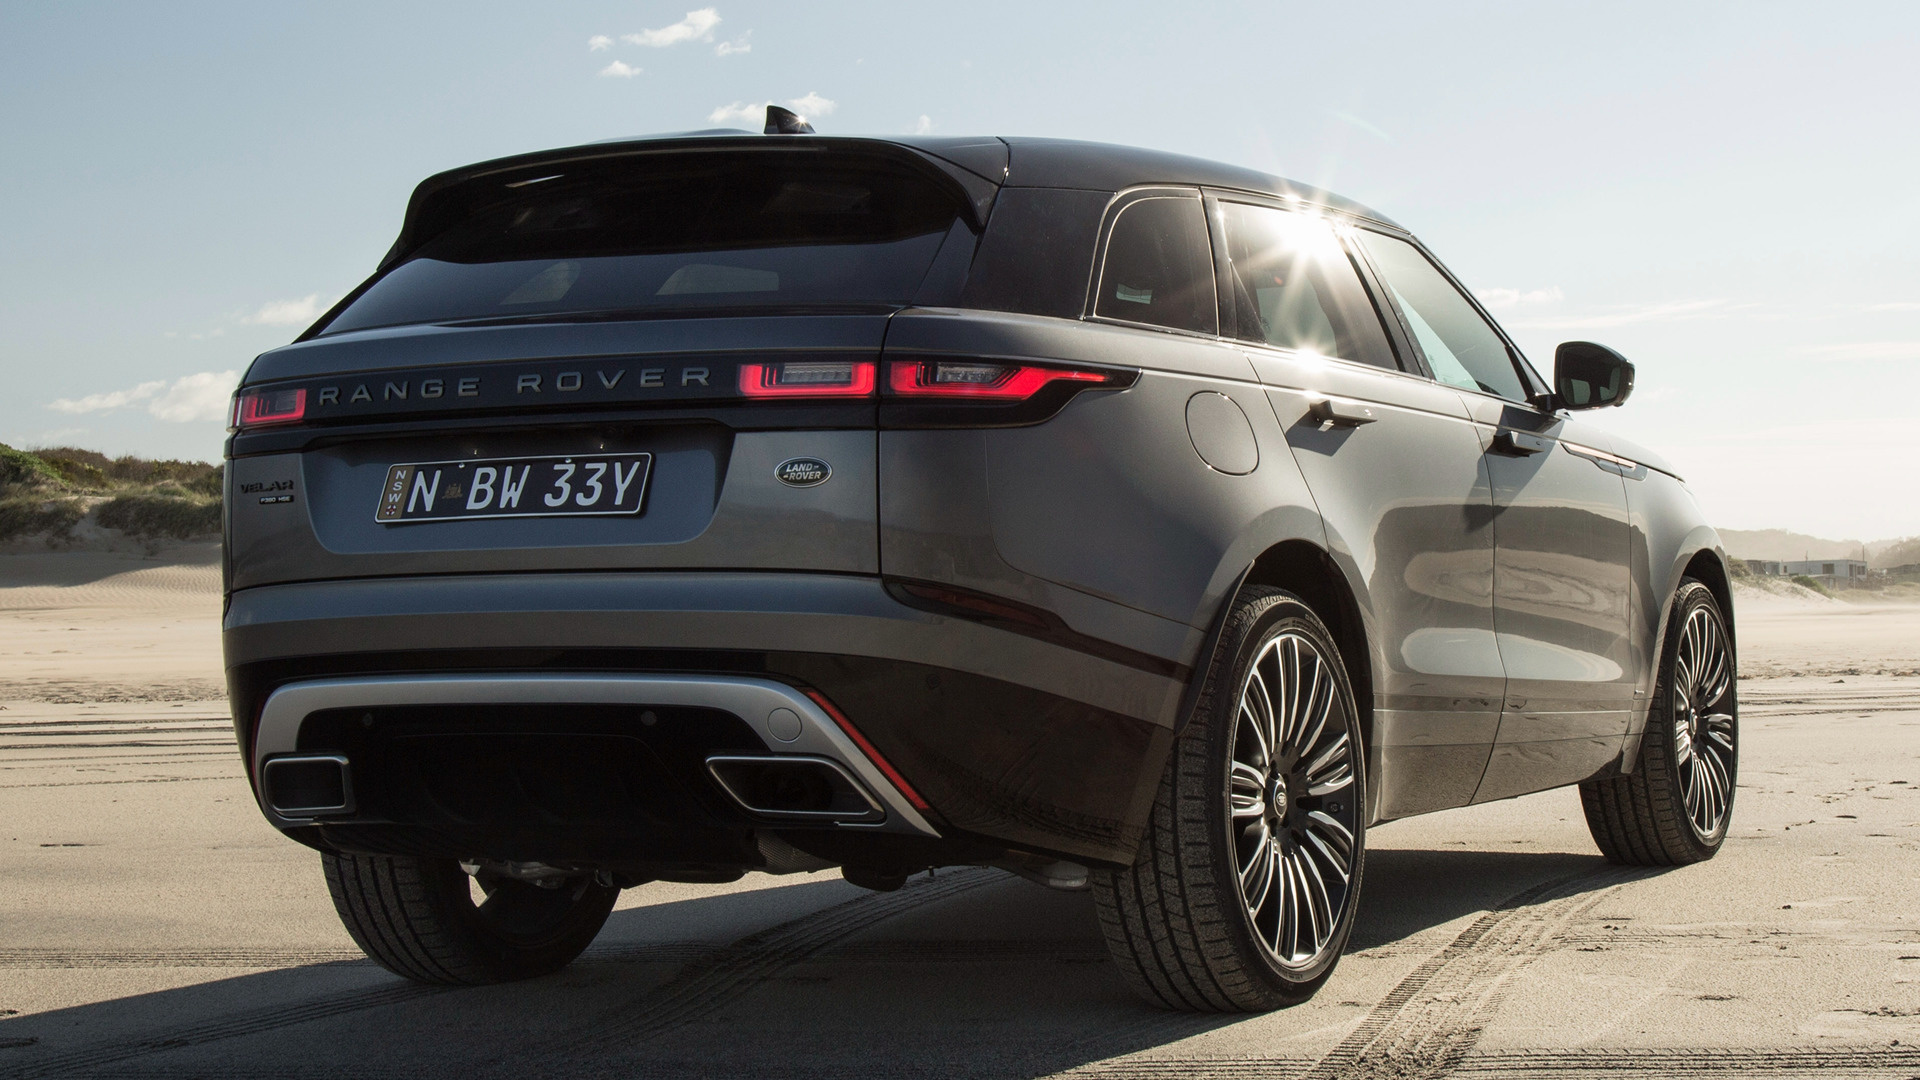 2017 Range Rover Velar R Dynamic Hd Wallpaper Background